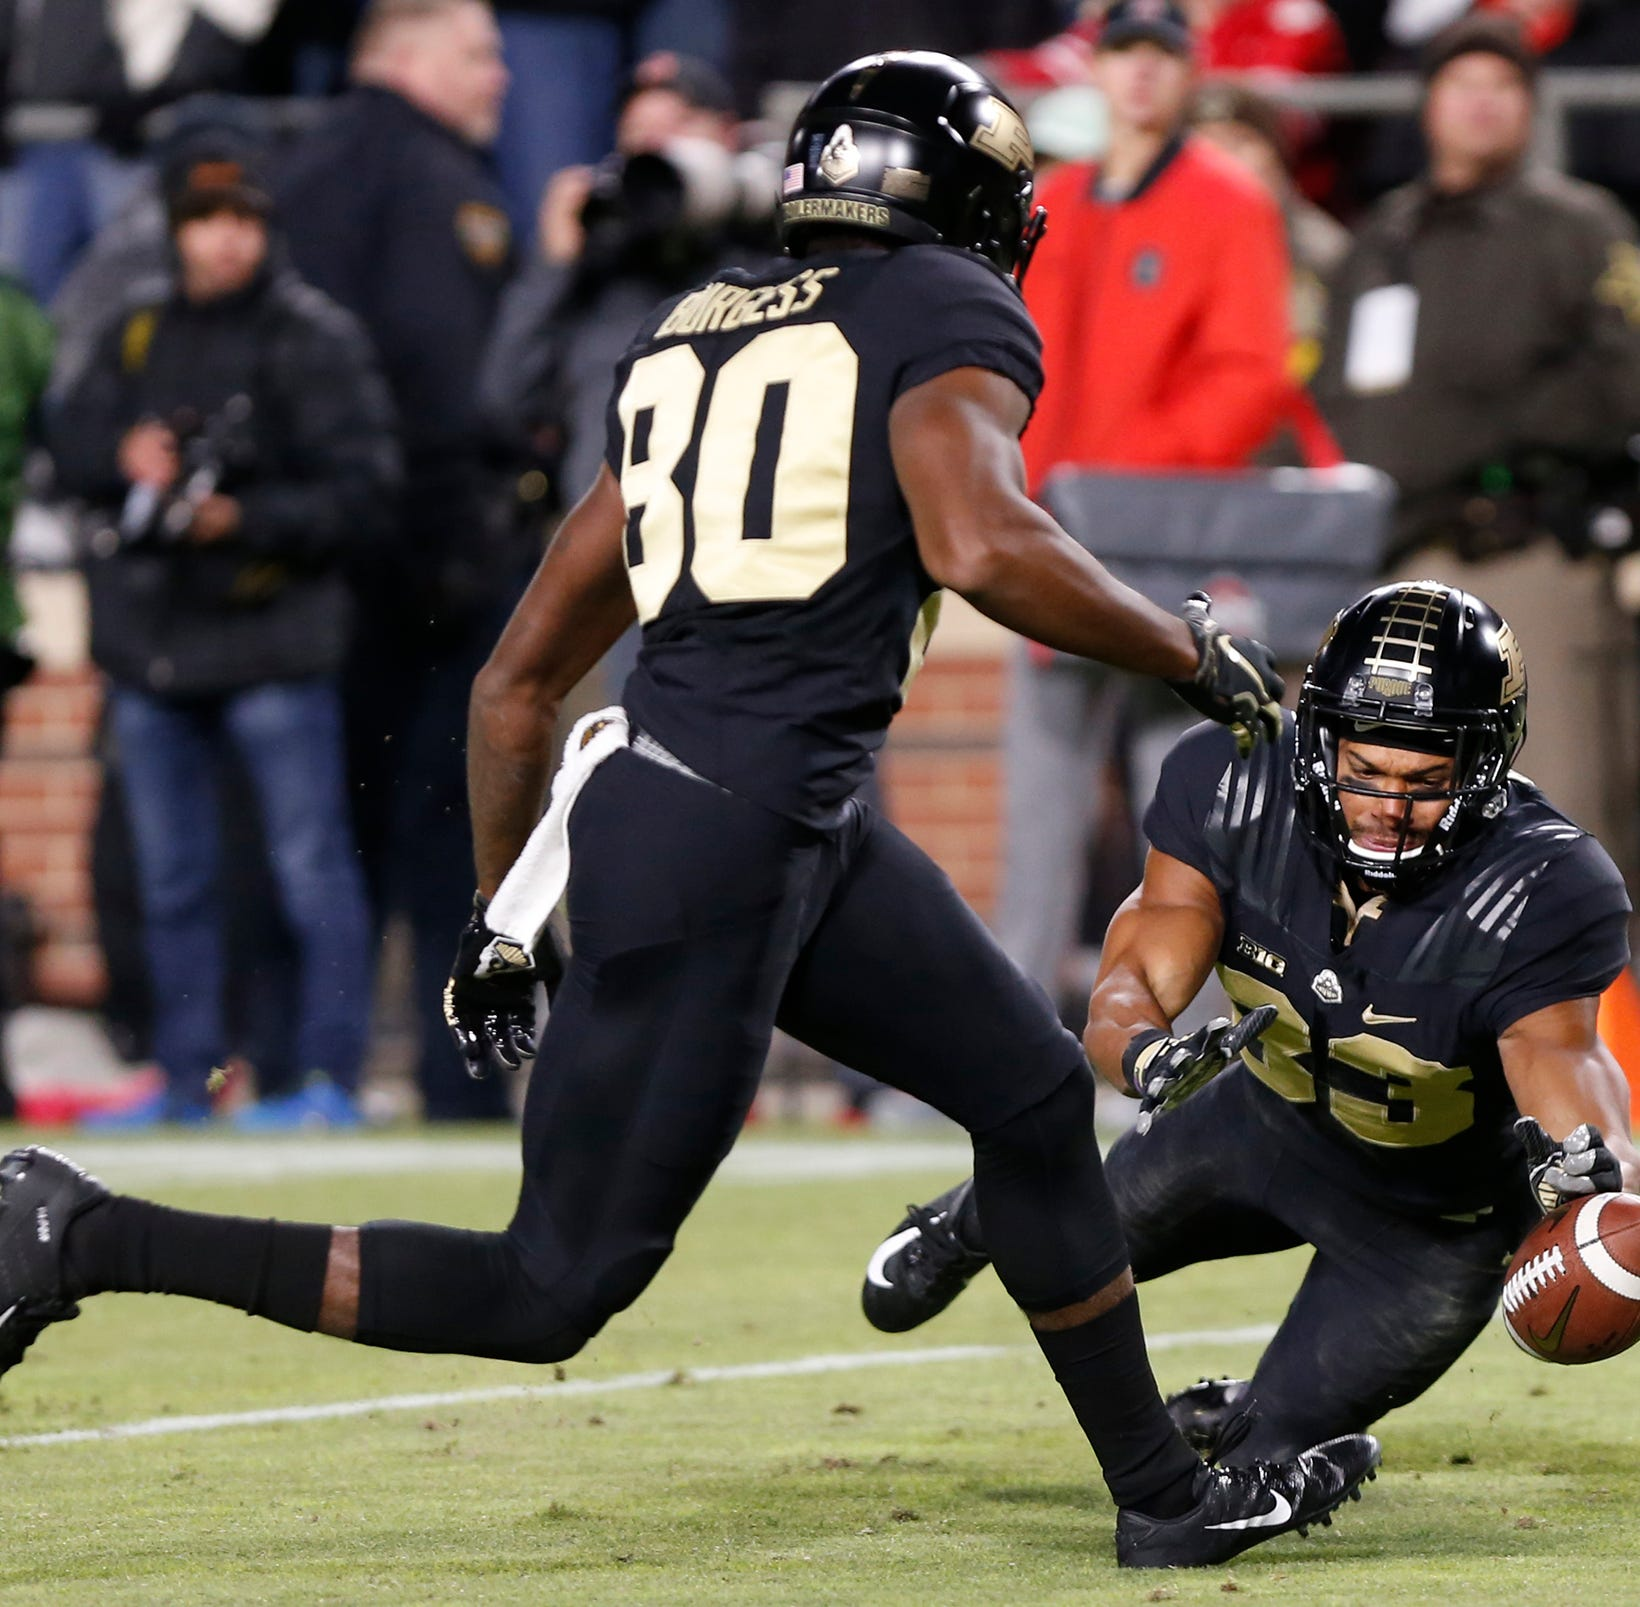 Purdue 49, Ohio State 20: Grading the Boilermakers